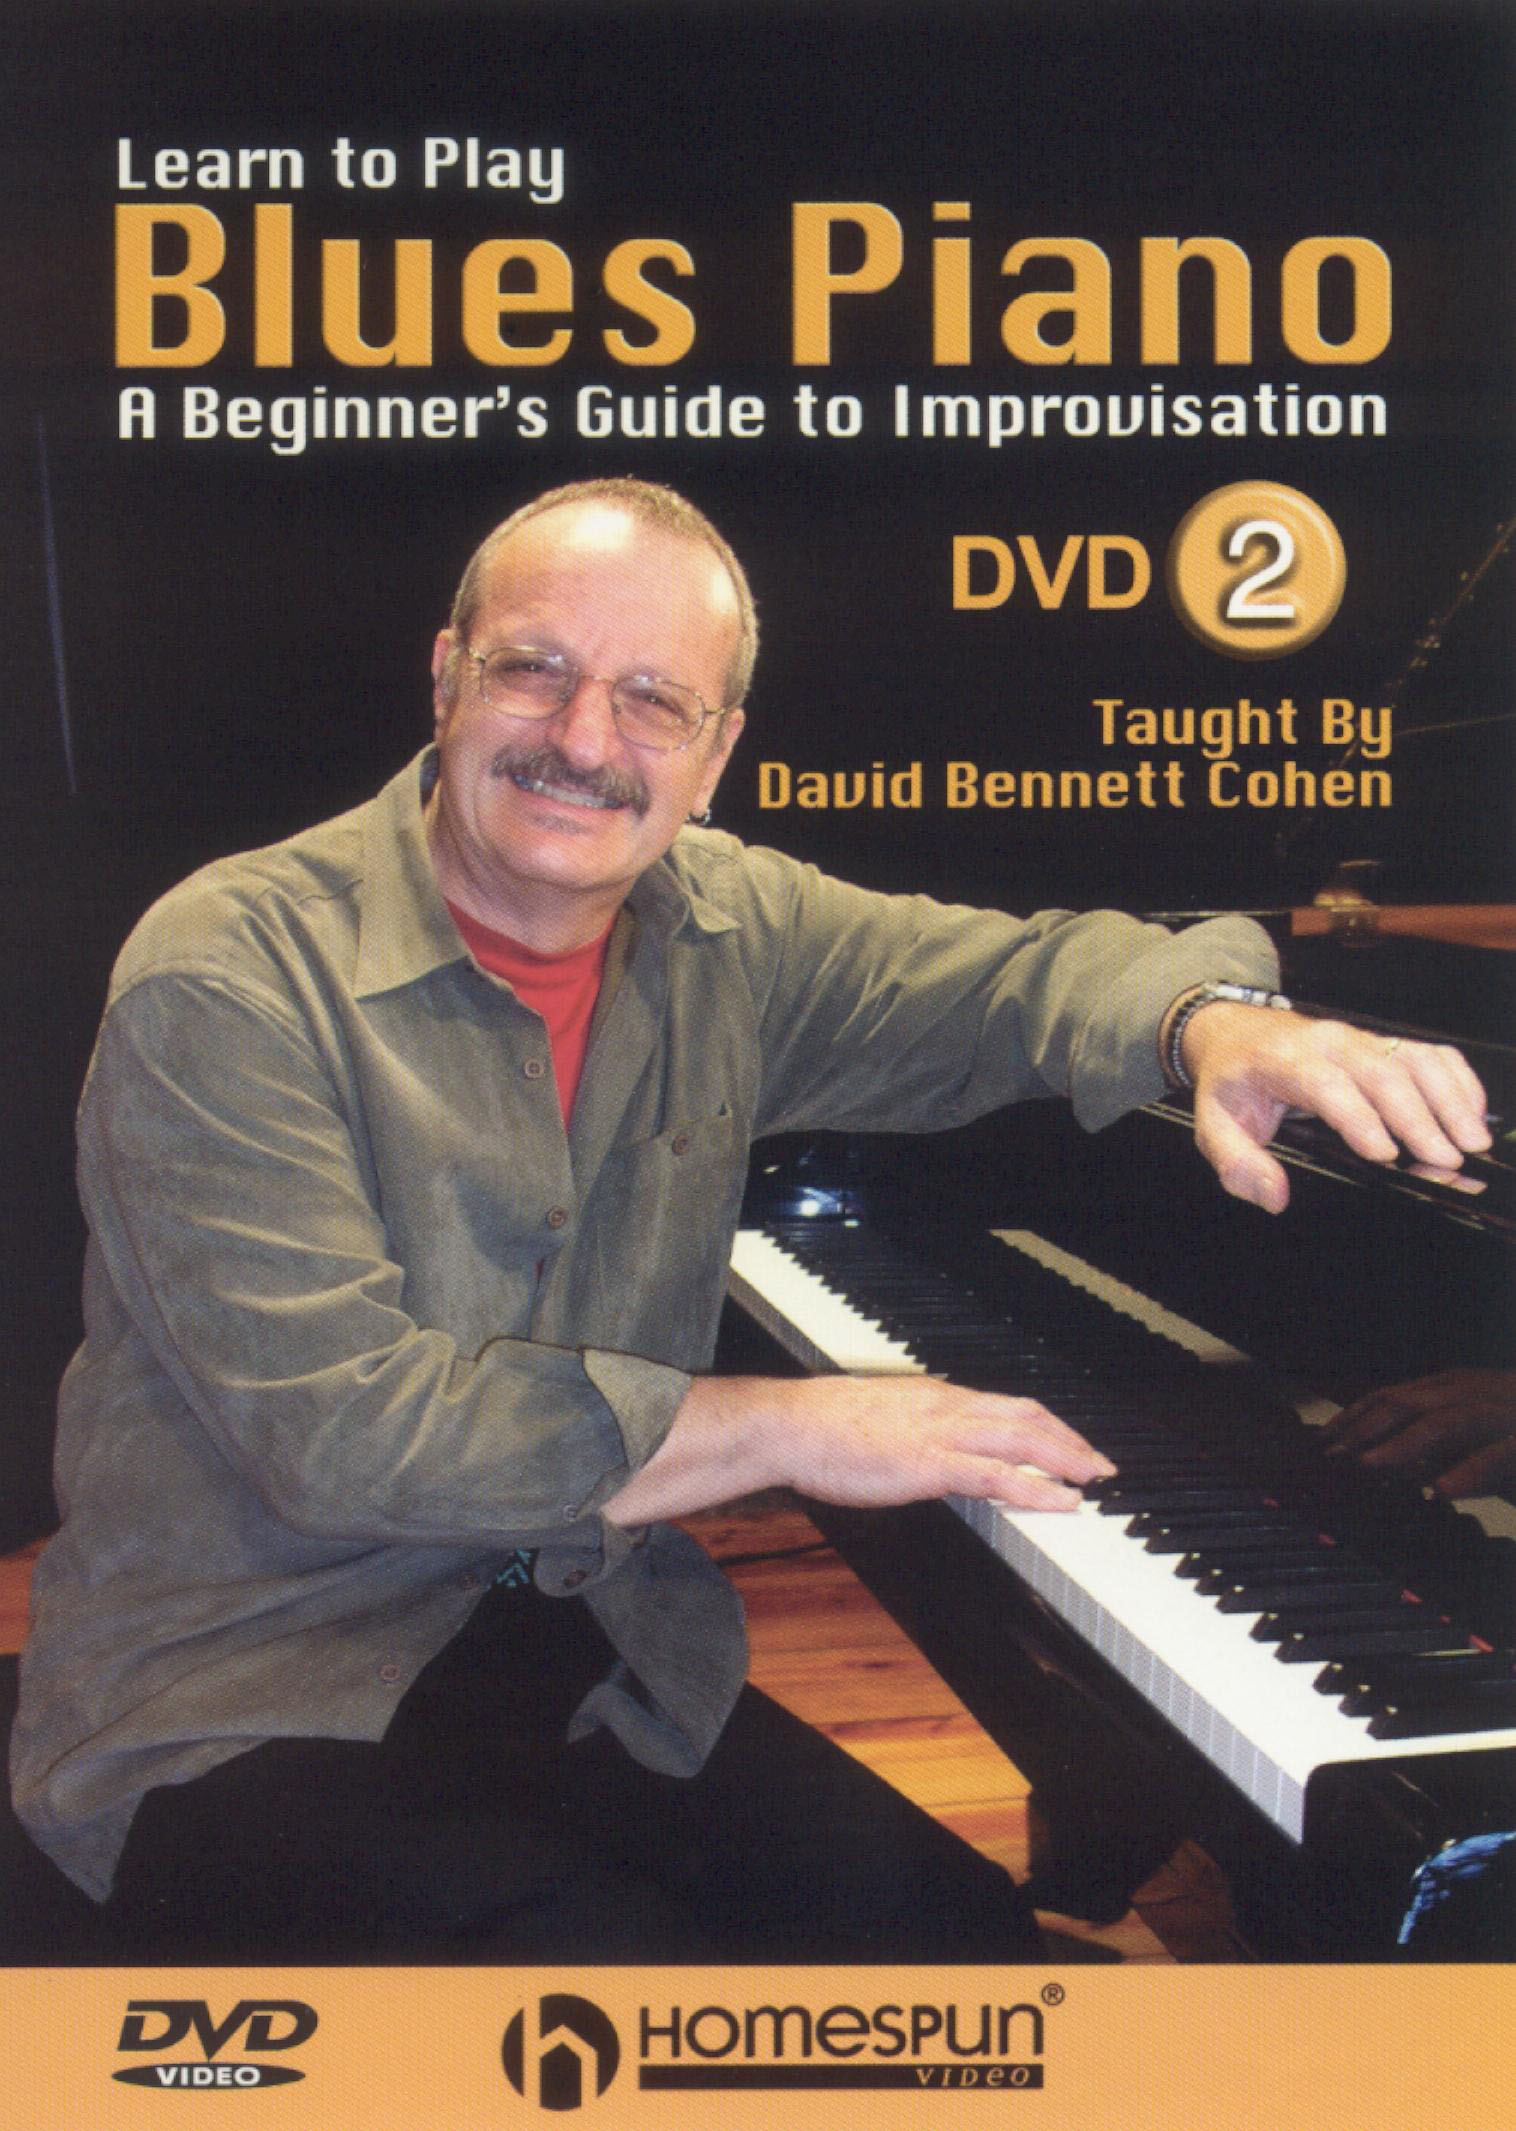 Learn to Play Blues Piano, Vol. 2